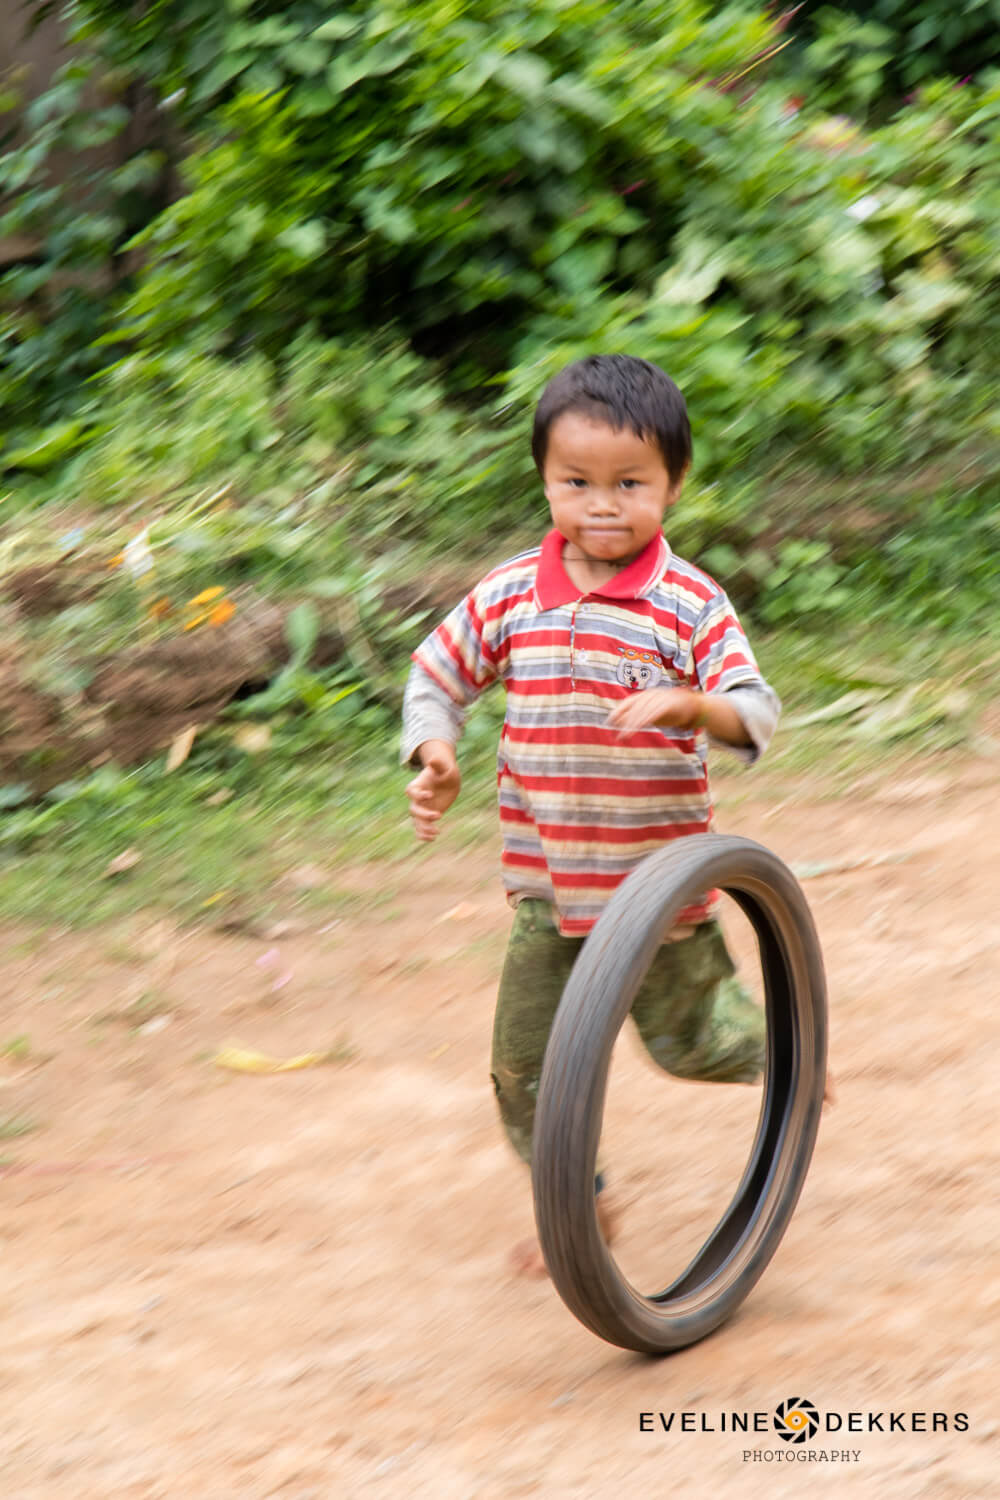 A stick and a tire is all you need for fun - Myanmar